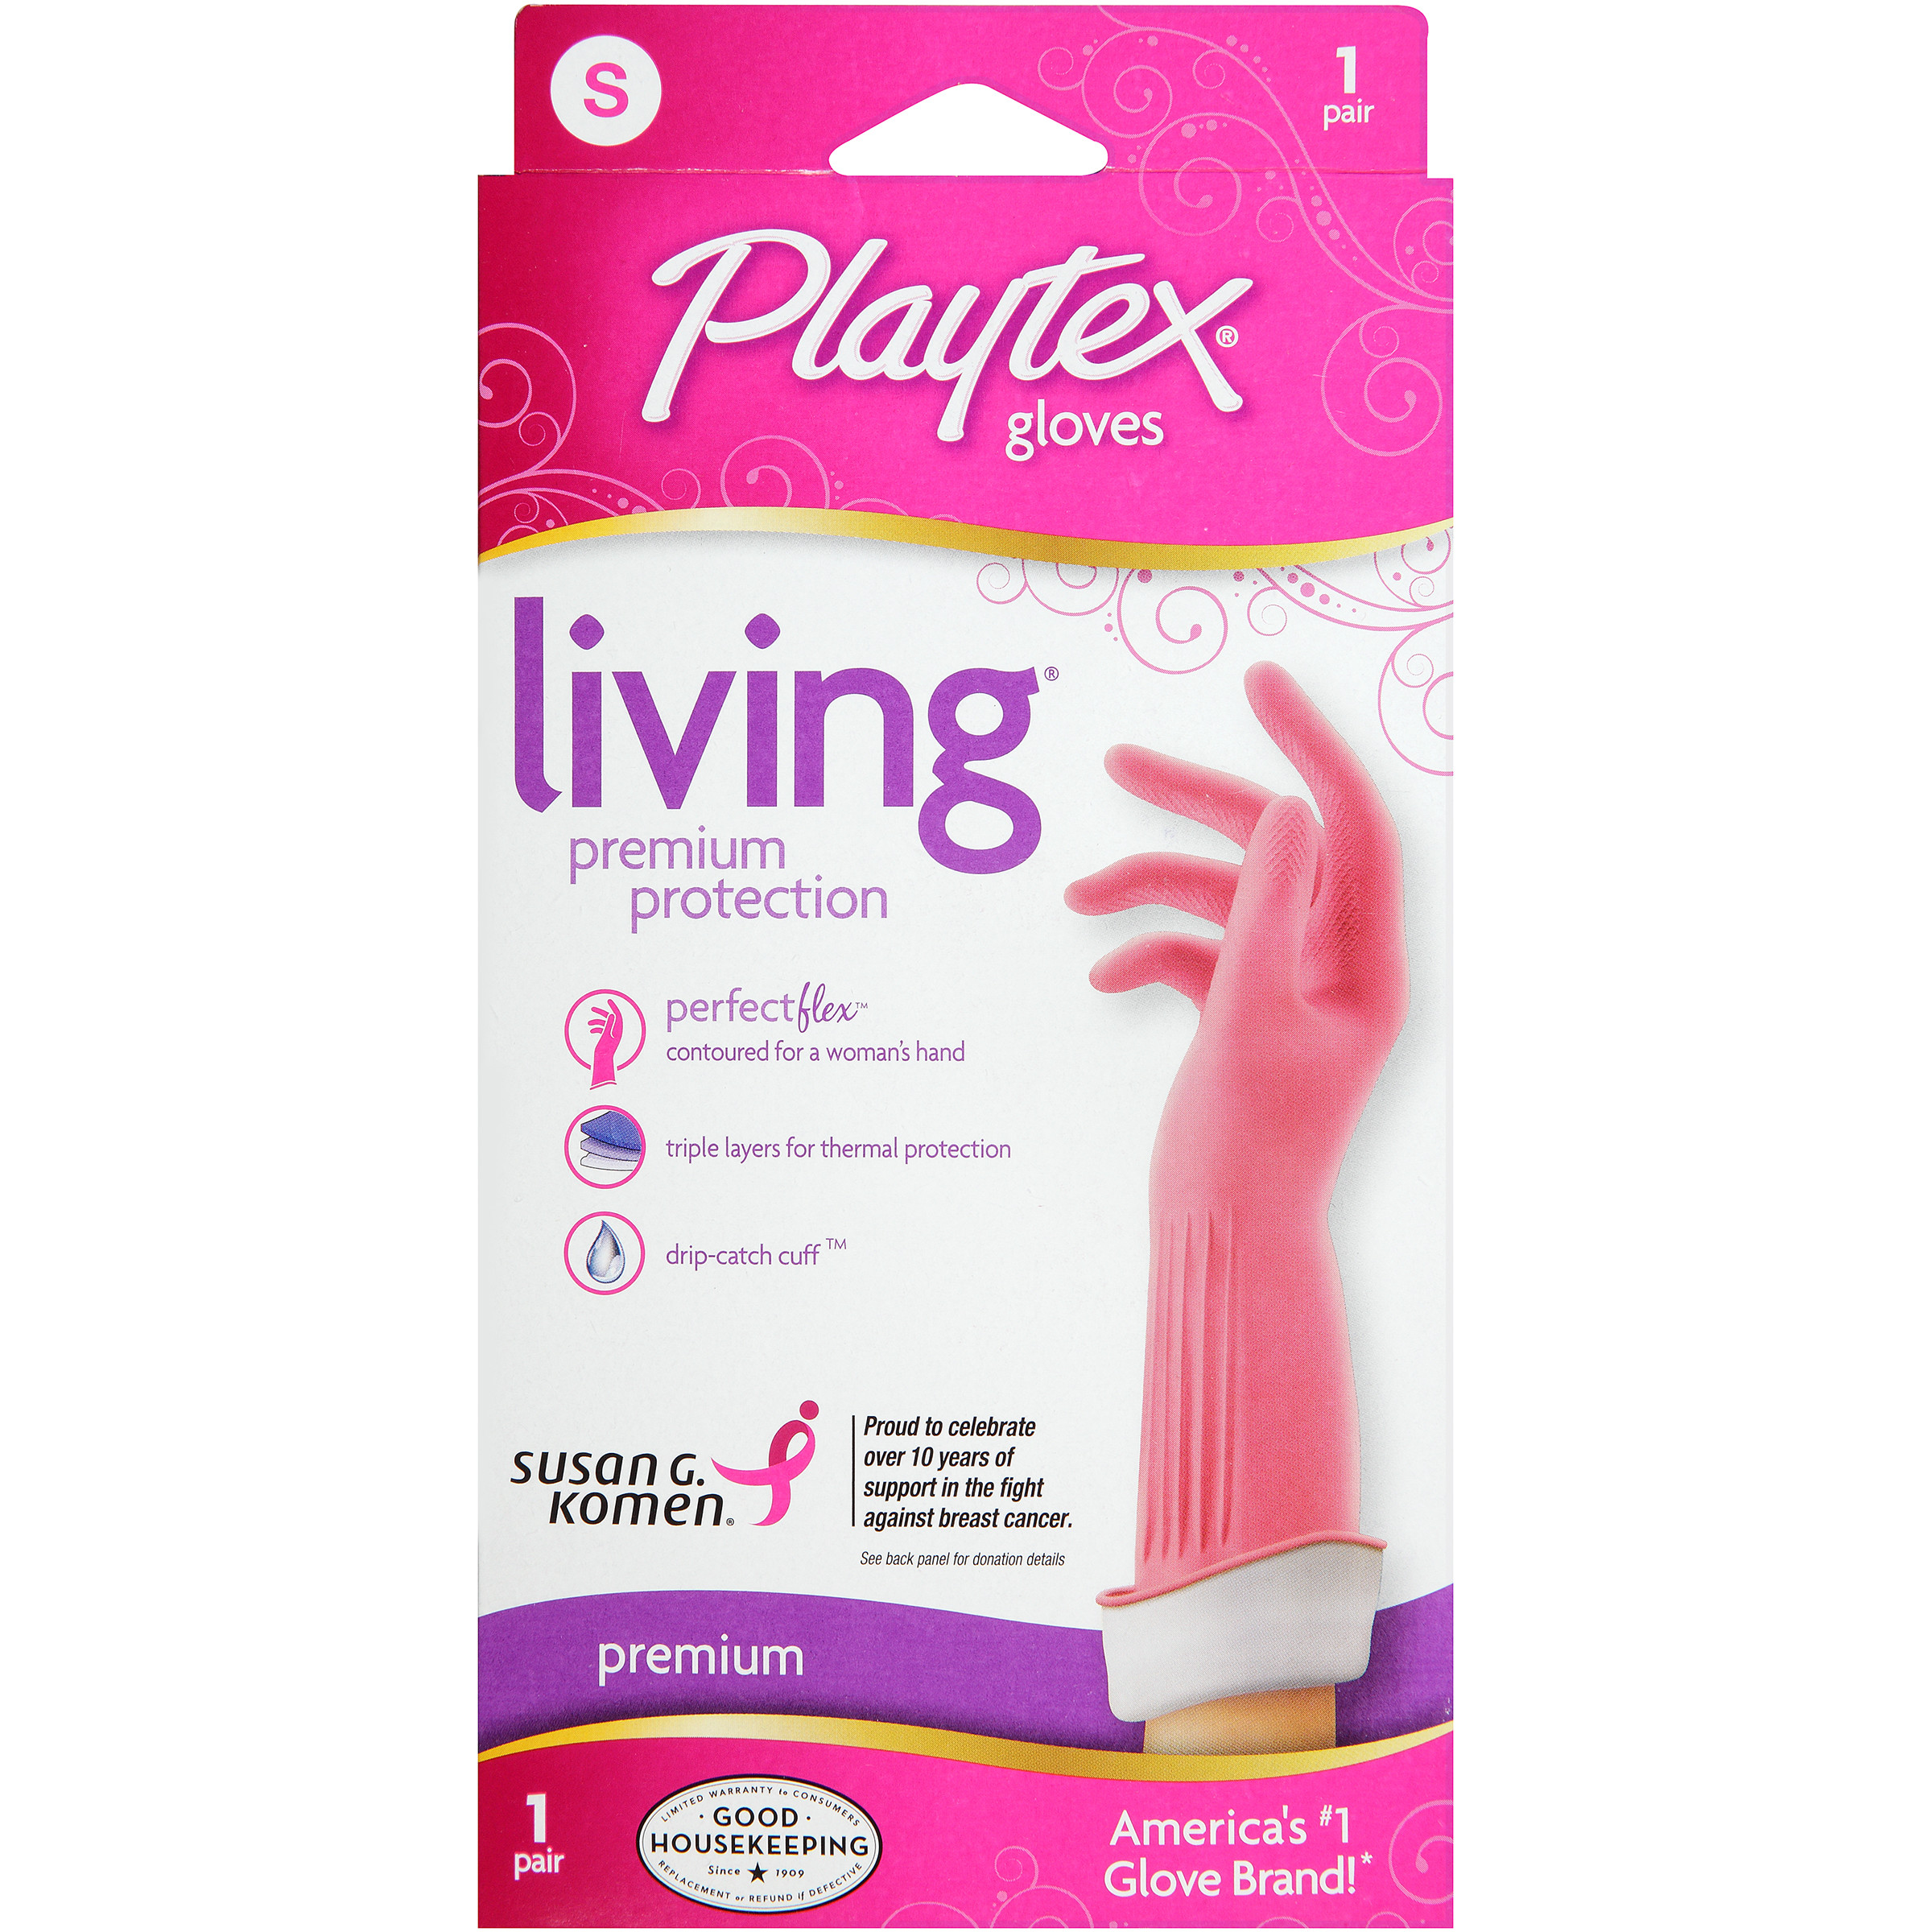 Playtex Living Reusable Gloves With Drip-catch Cuff Small - 1 Pair